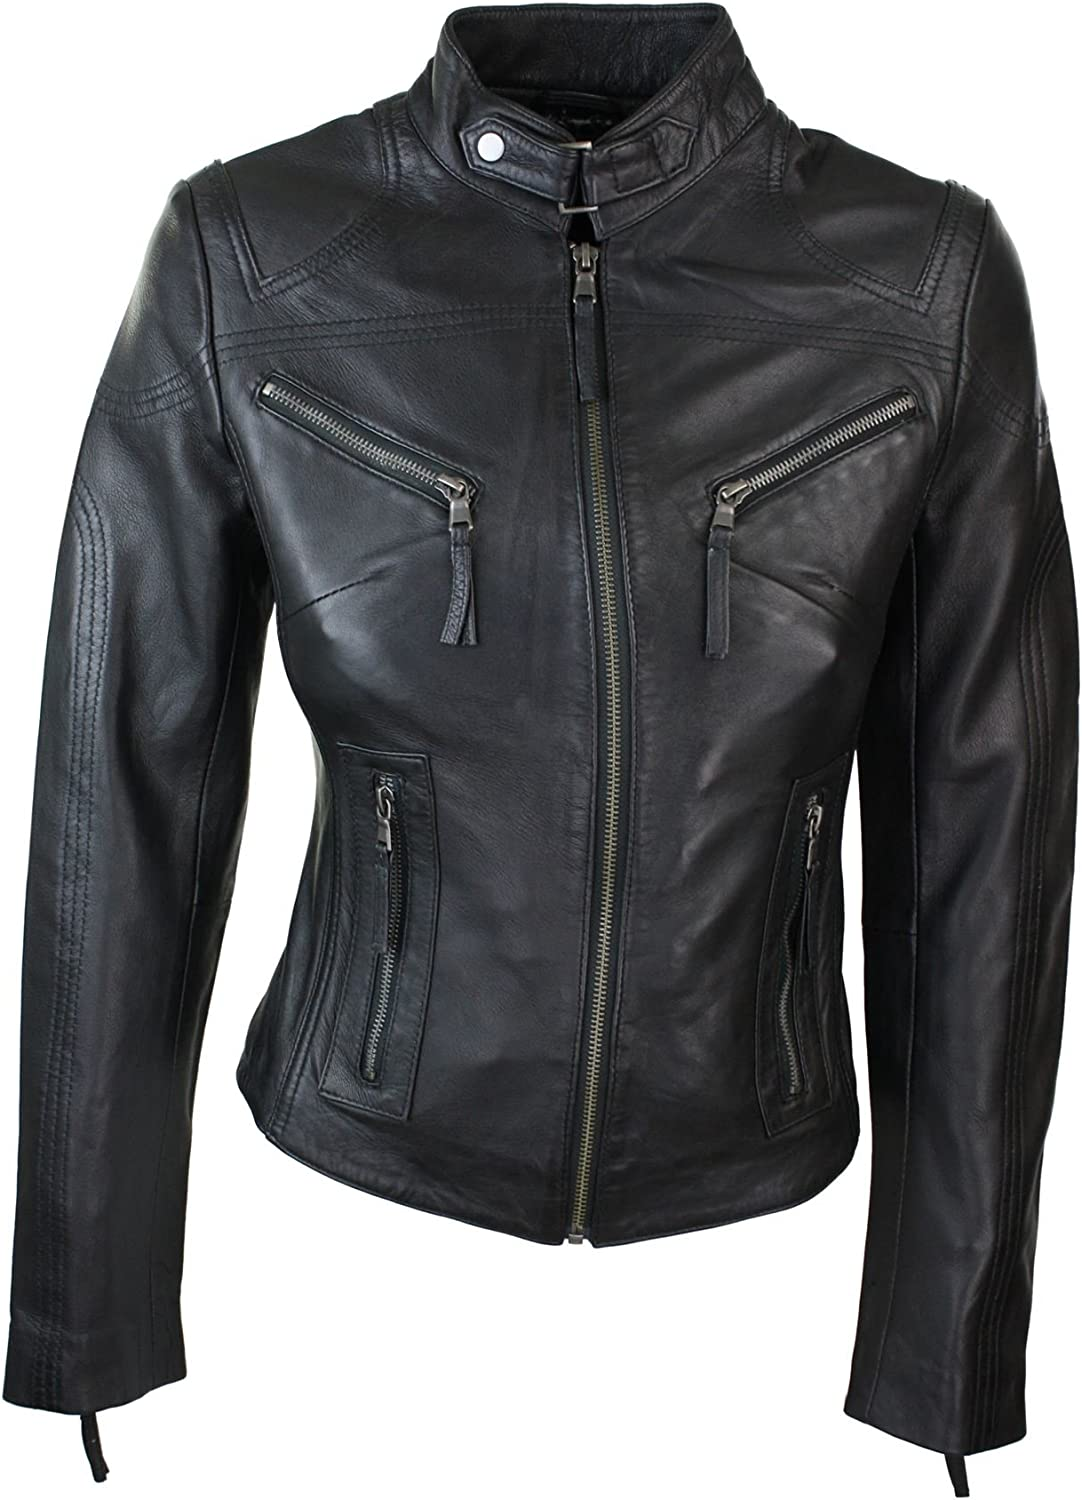 Infinity Ladies Real Leather Biker Style Fashion Jacket Black